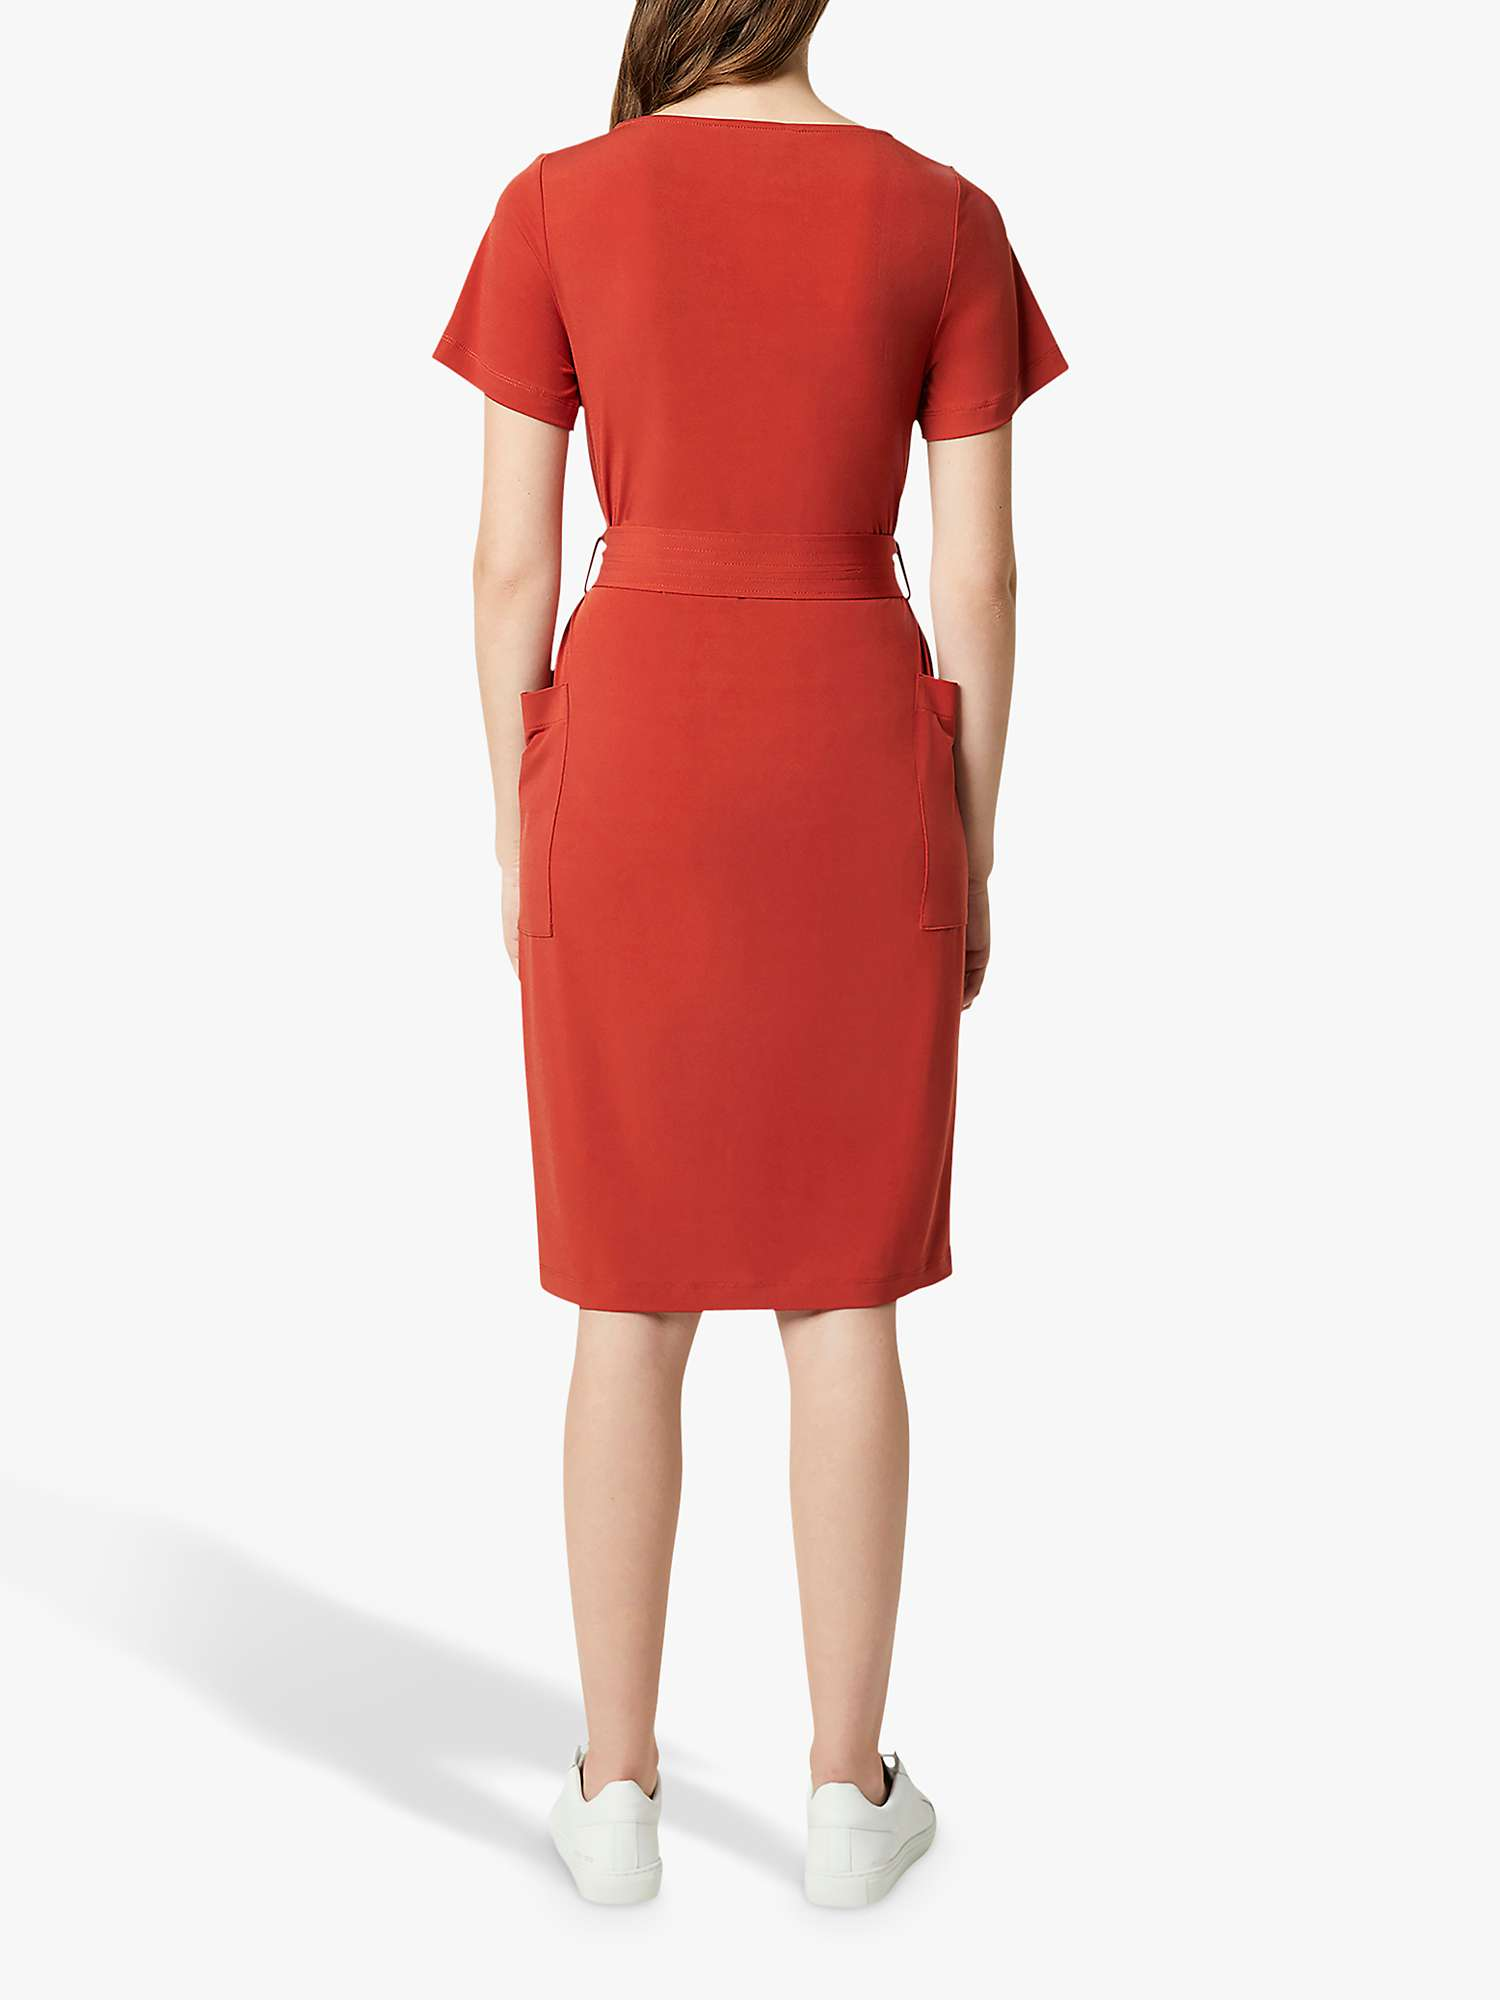 French Connection Shanika Slinky Square Neck utton Detail Dress, Red Ochre